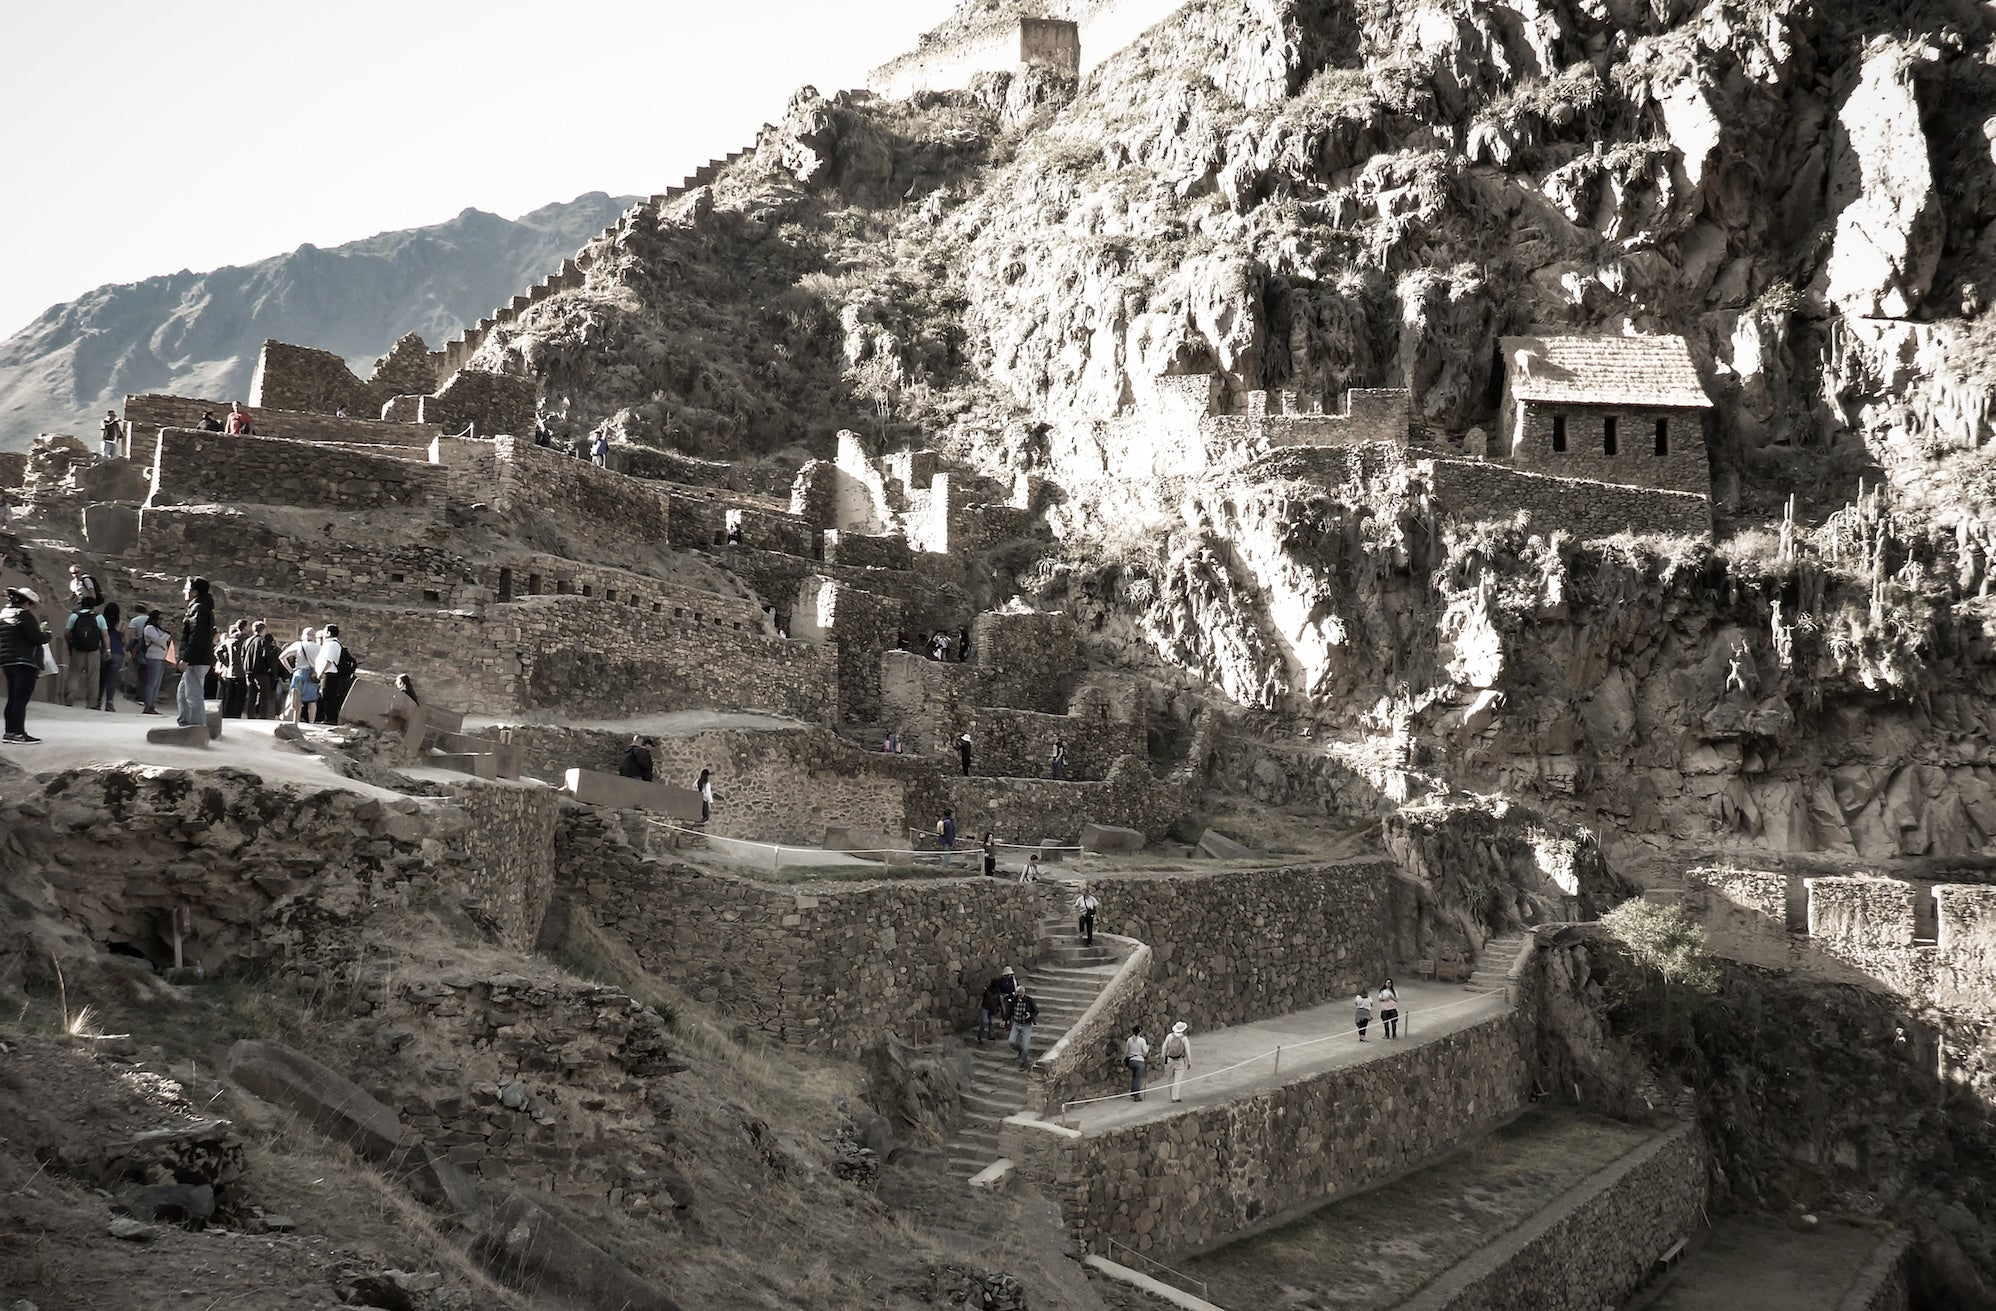 The Ollantaytambo ruins are some of the most impressive I have visited. Avoiding early morning or late afternoon can circumvent a lot of bus visitors.